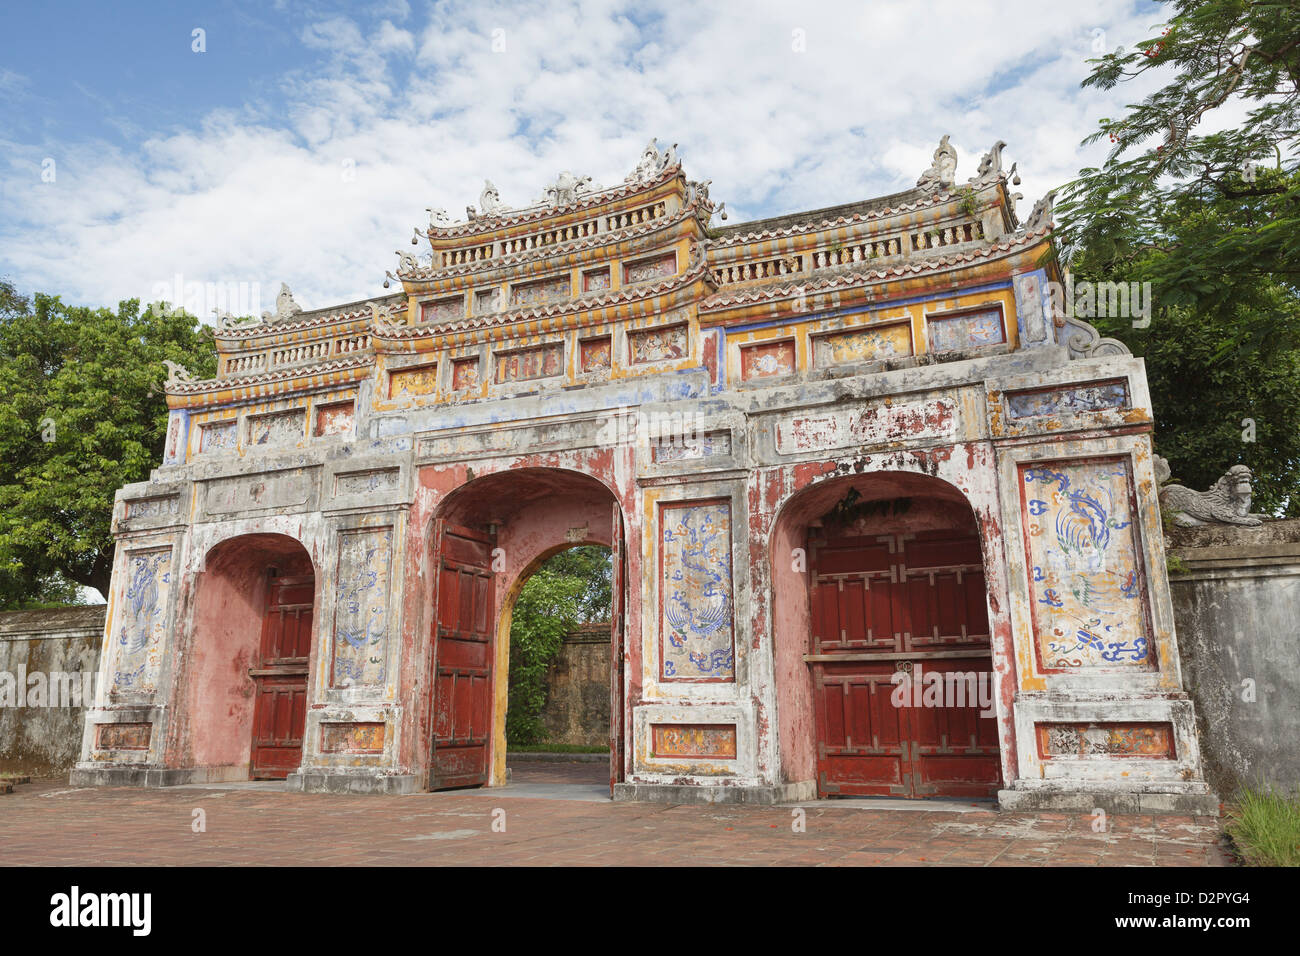 Gates at the Imperial Citadel, Hue, UNESCO World Heritage Site, Vietnam, Indochina, Southeast Asia, Asia - Stock Image